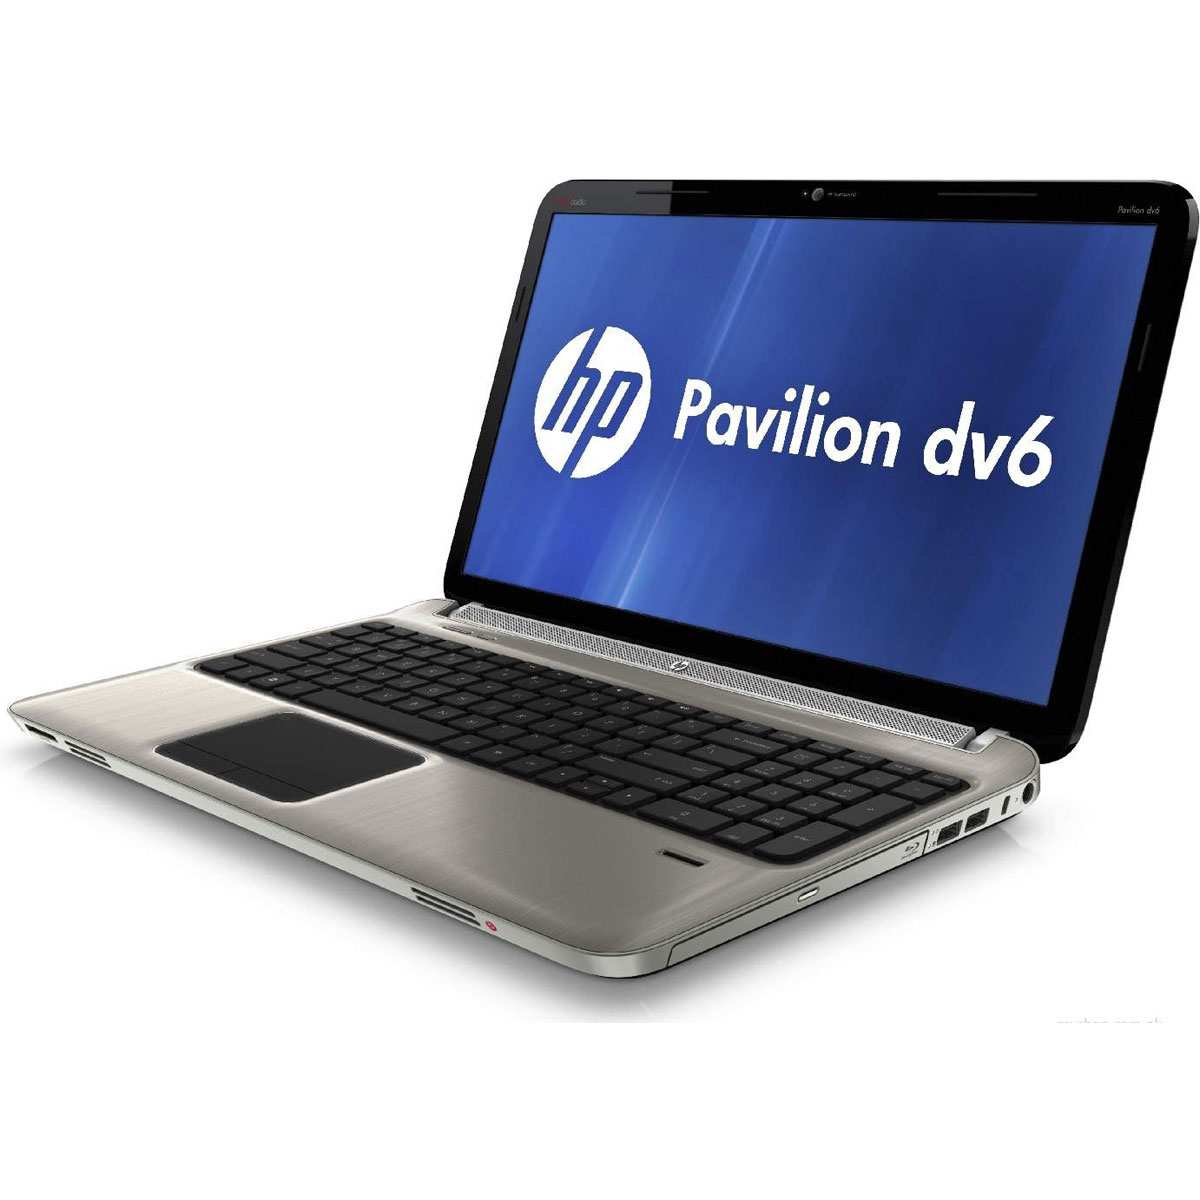 HP Pavilion Dv66170se Laptop Price in Pakistan